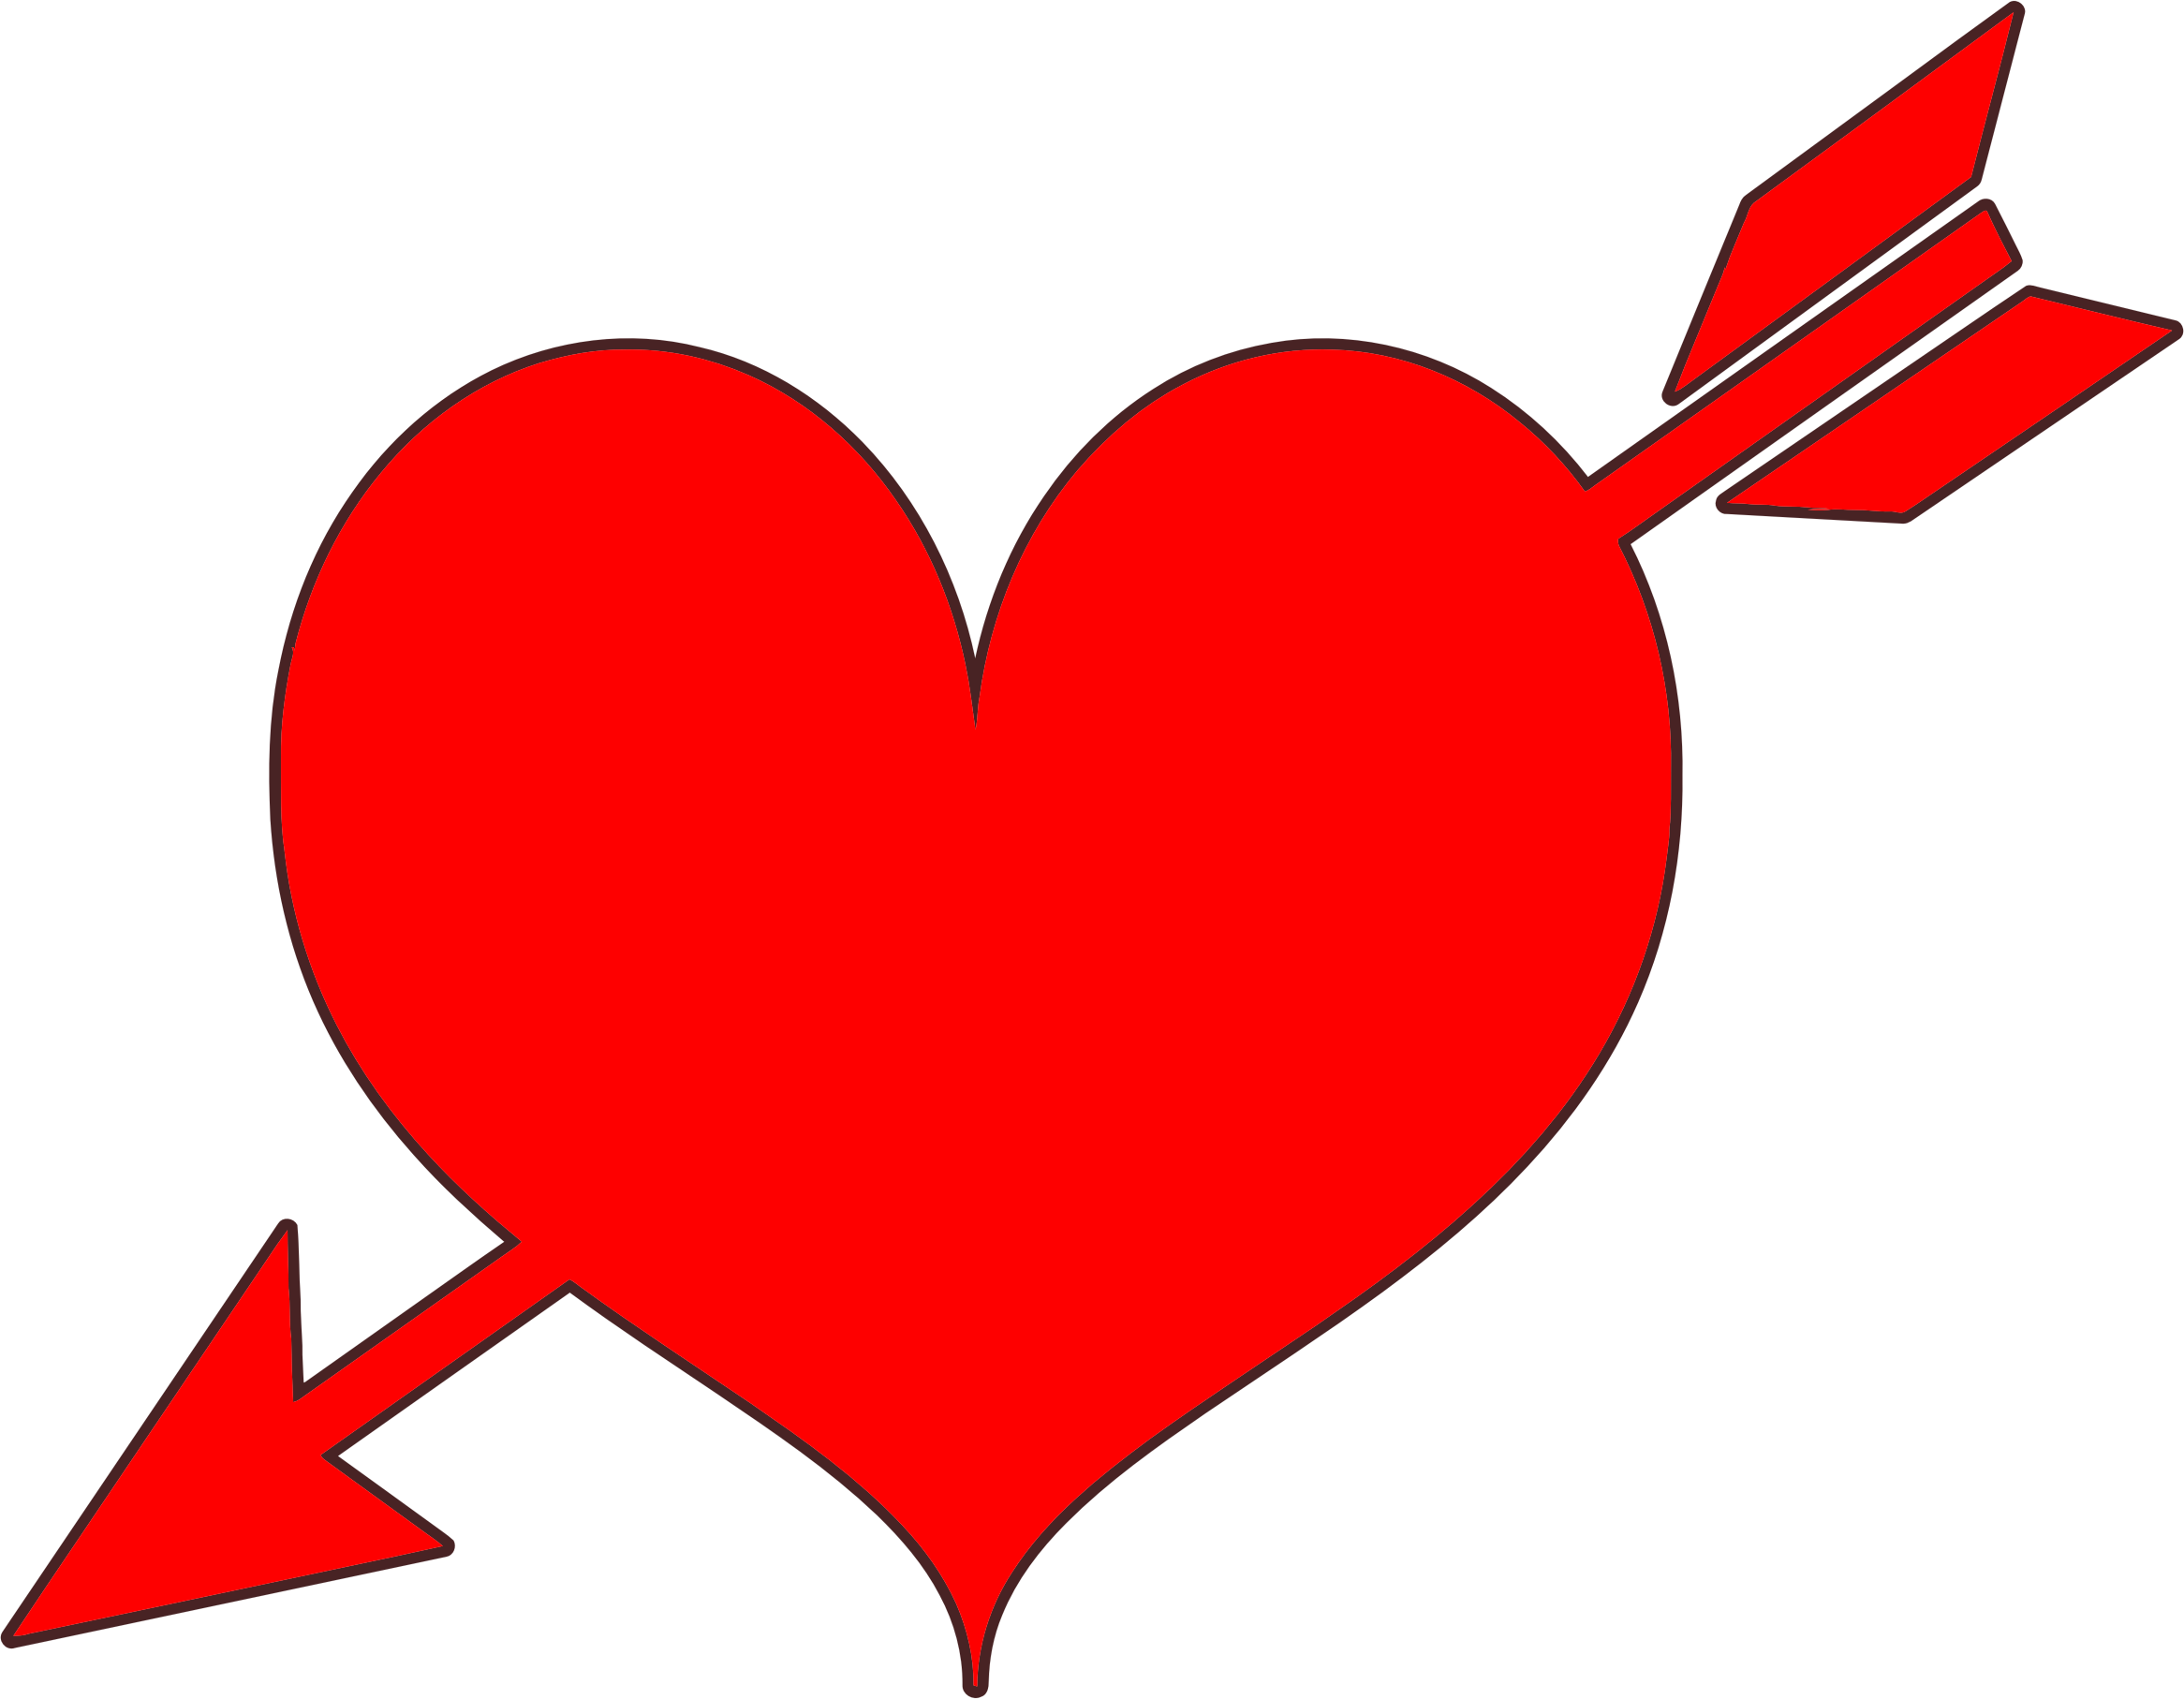 Arrow With Heart Clipart   Free download on ClipArtMag